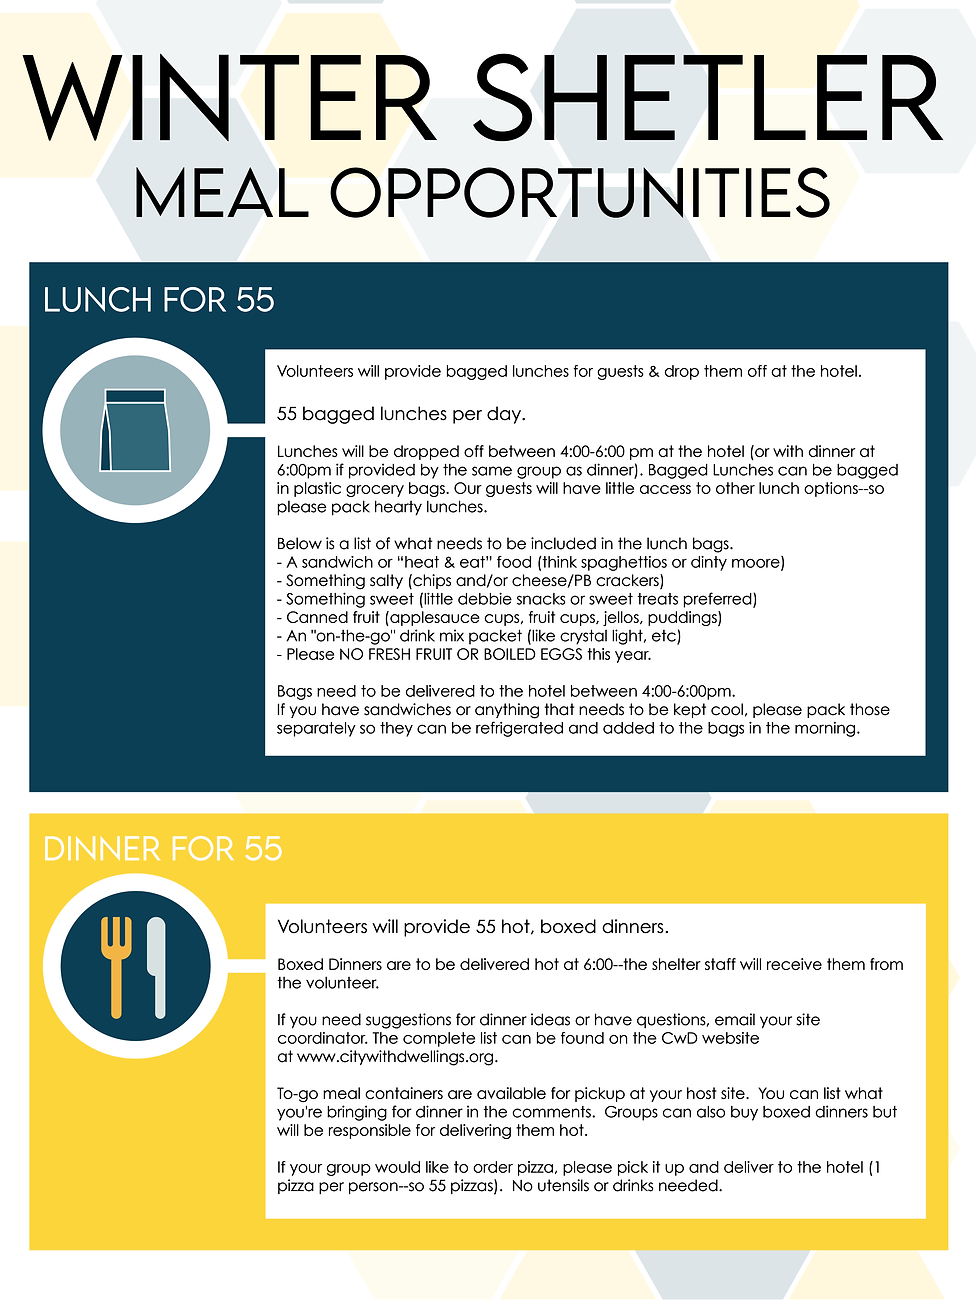 Winter Shelter Meal Opportunities-01.png